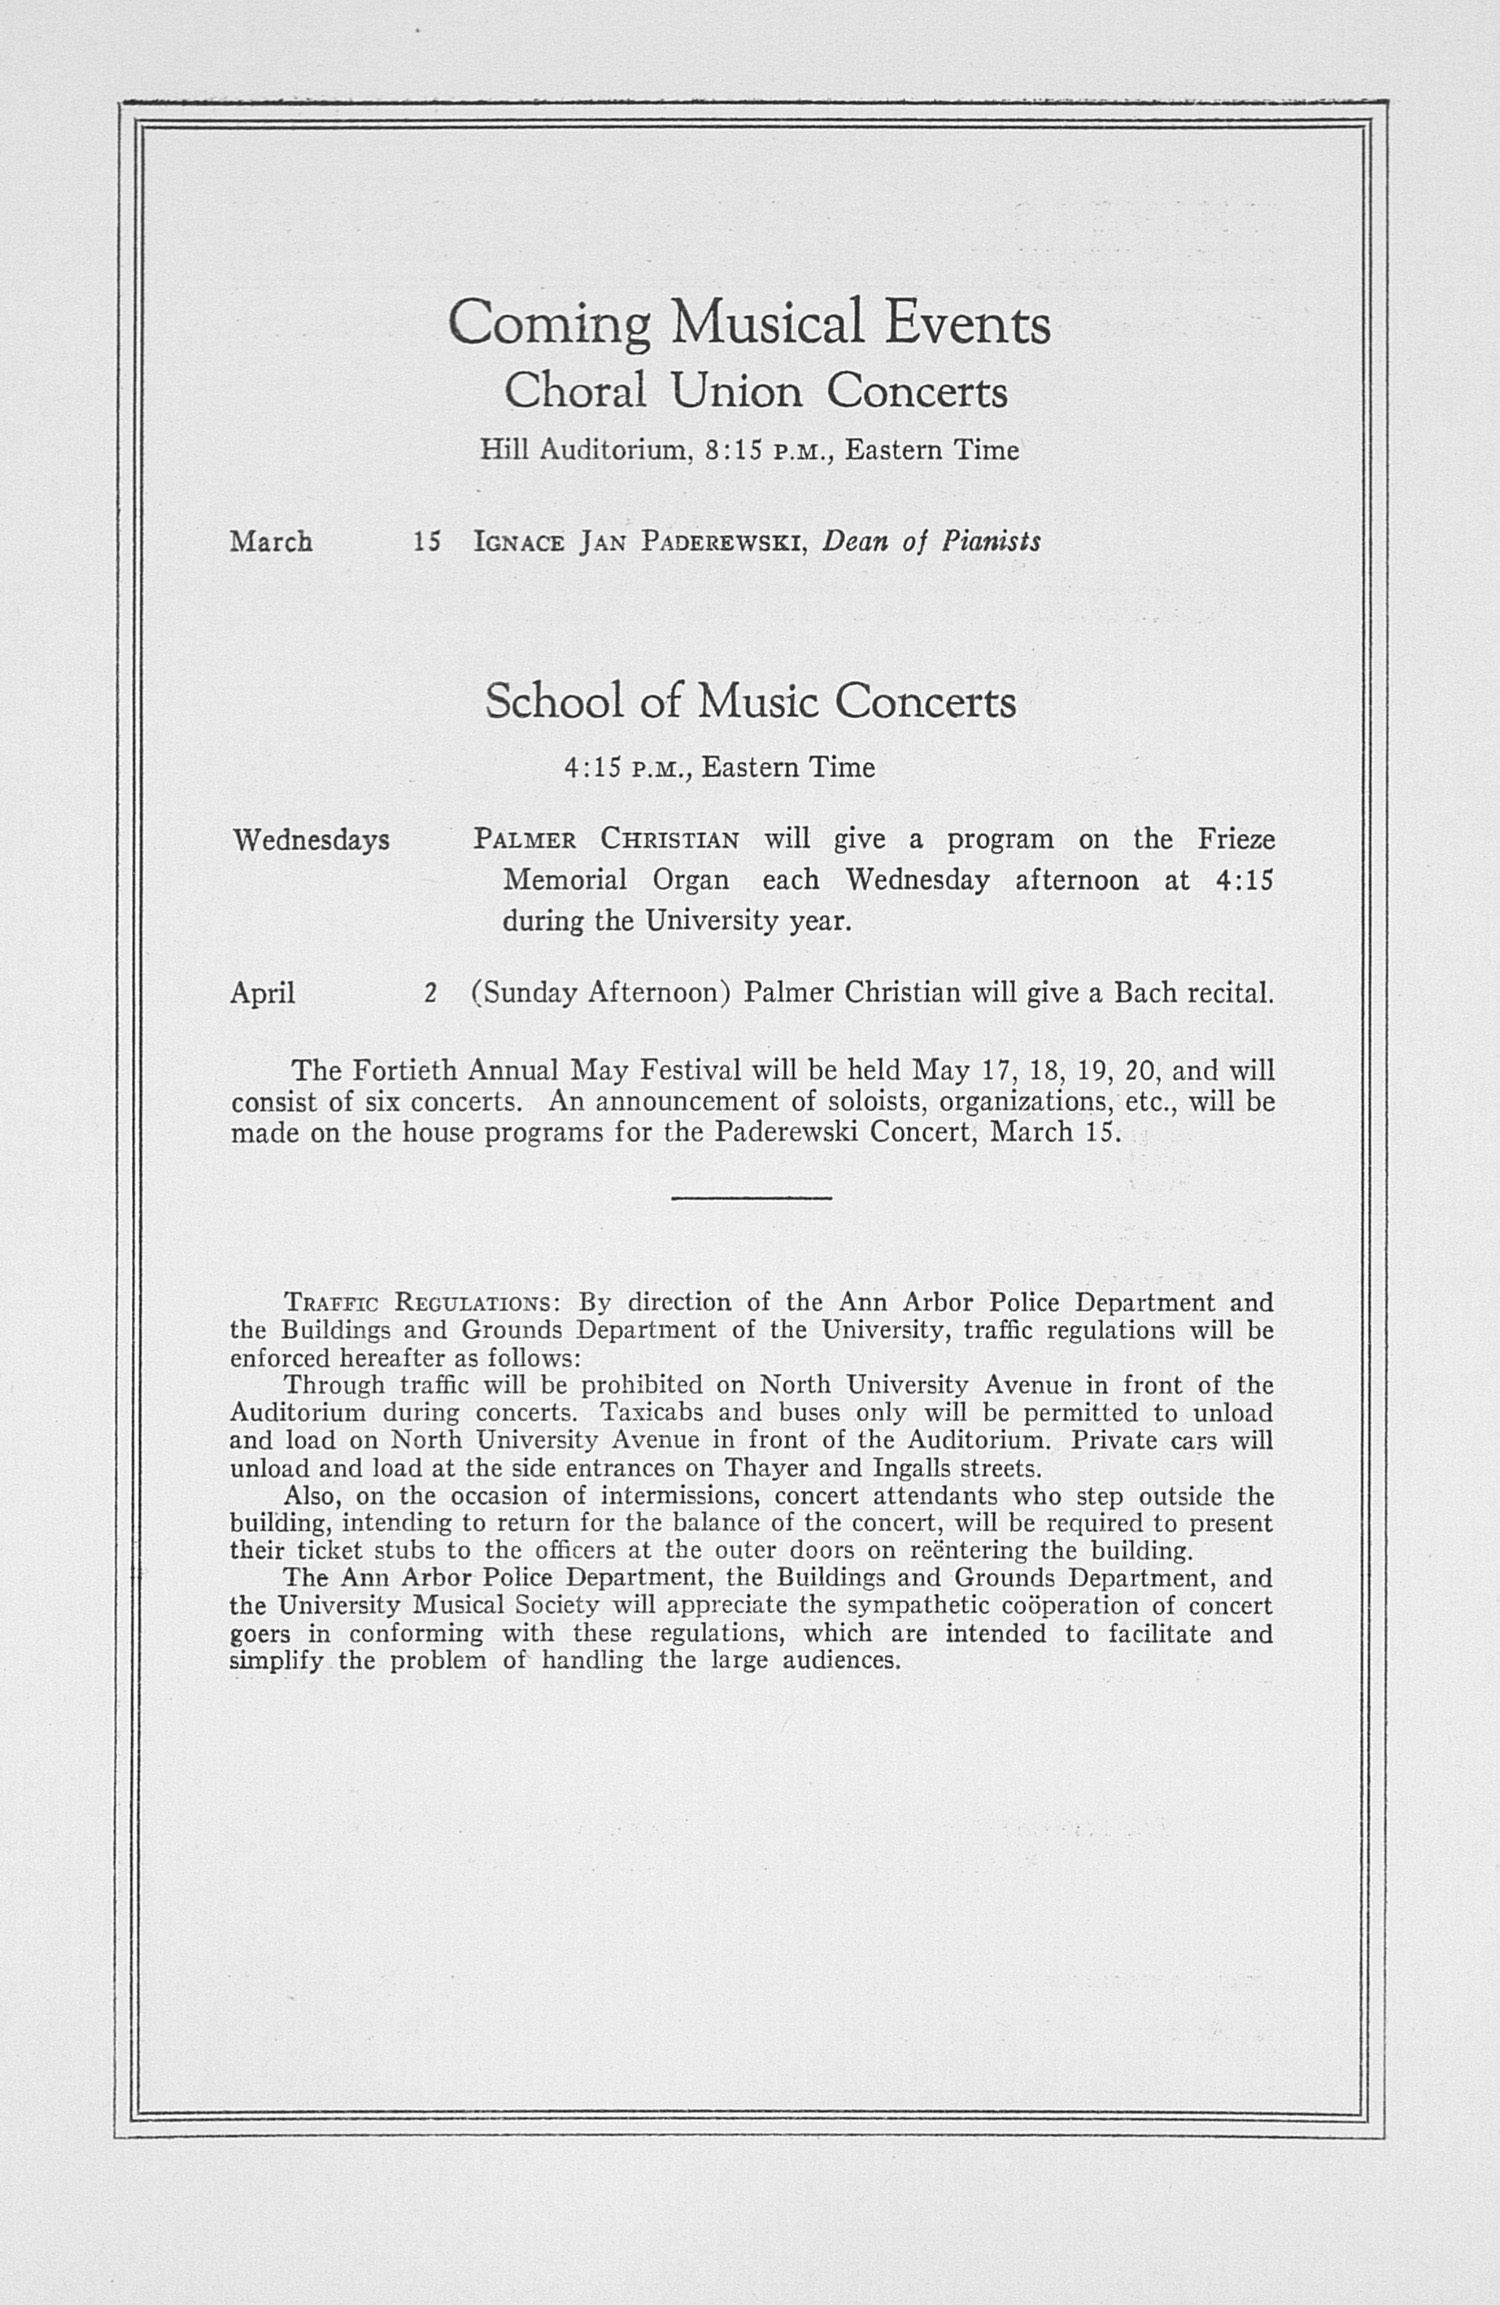 UMS Concert Program, March 6, 1933: Fifty-fourth Annual Choral Union Concert Series -- Vladimir Horowitz image